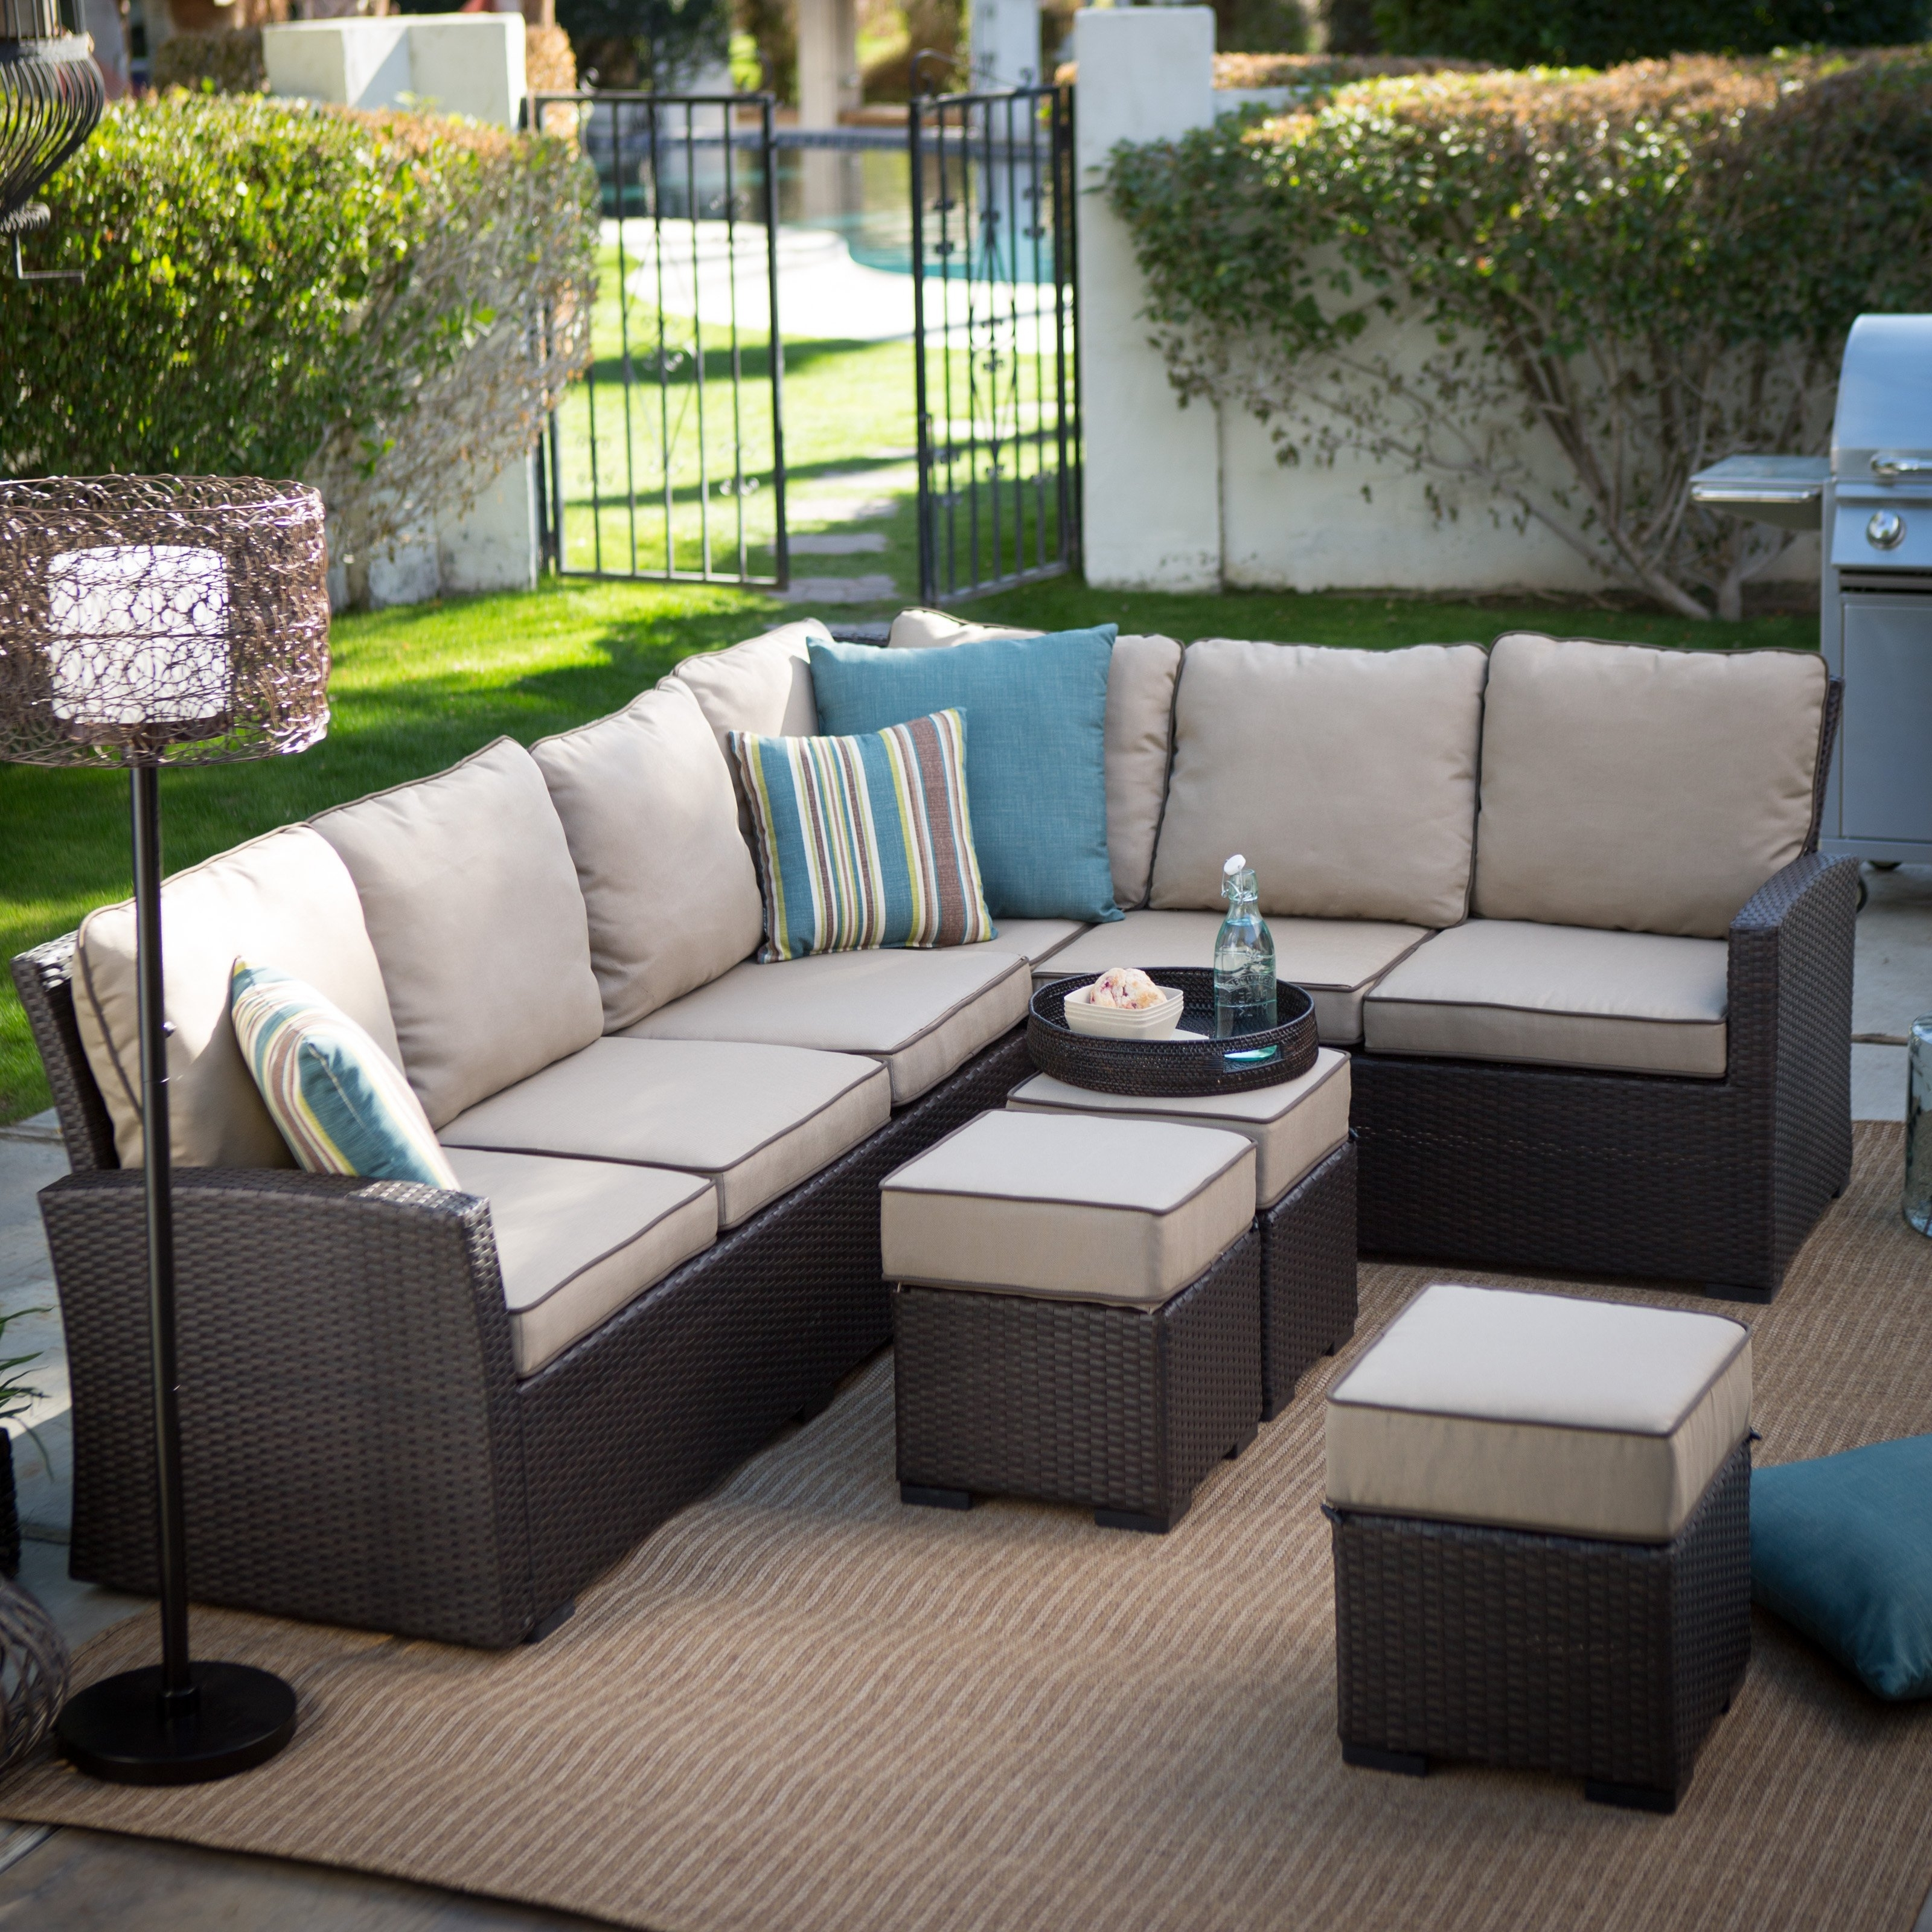 Conversation Patio Sets With Outdoor Sectionals With Well Liked Belham Living Monticello All Weather Outdoor Wicker Sofa Sectional (View 8 of 20)